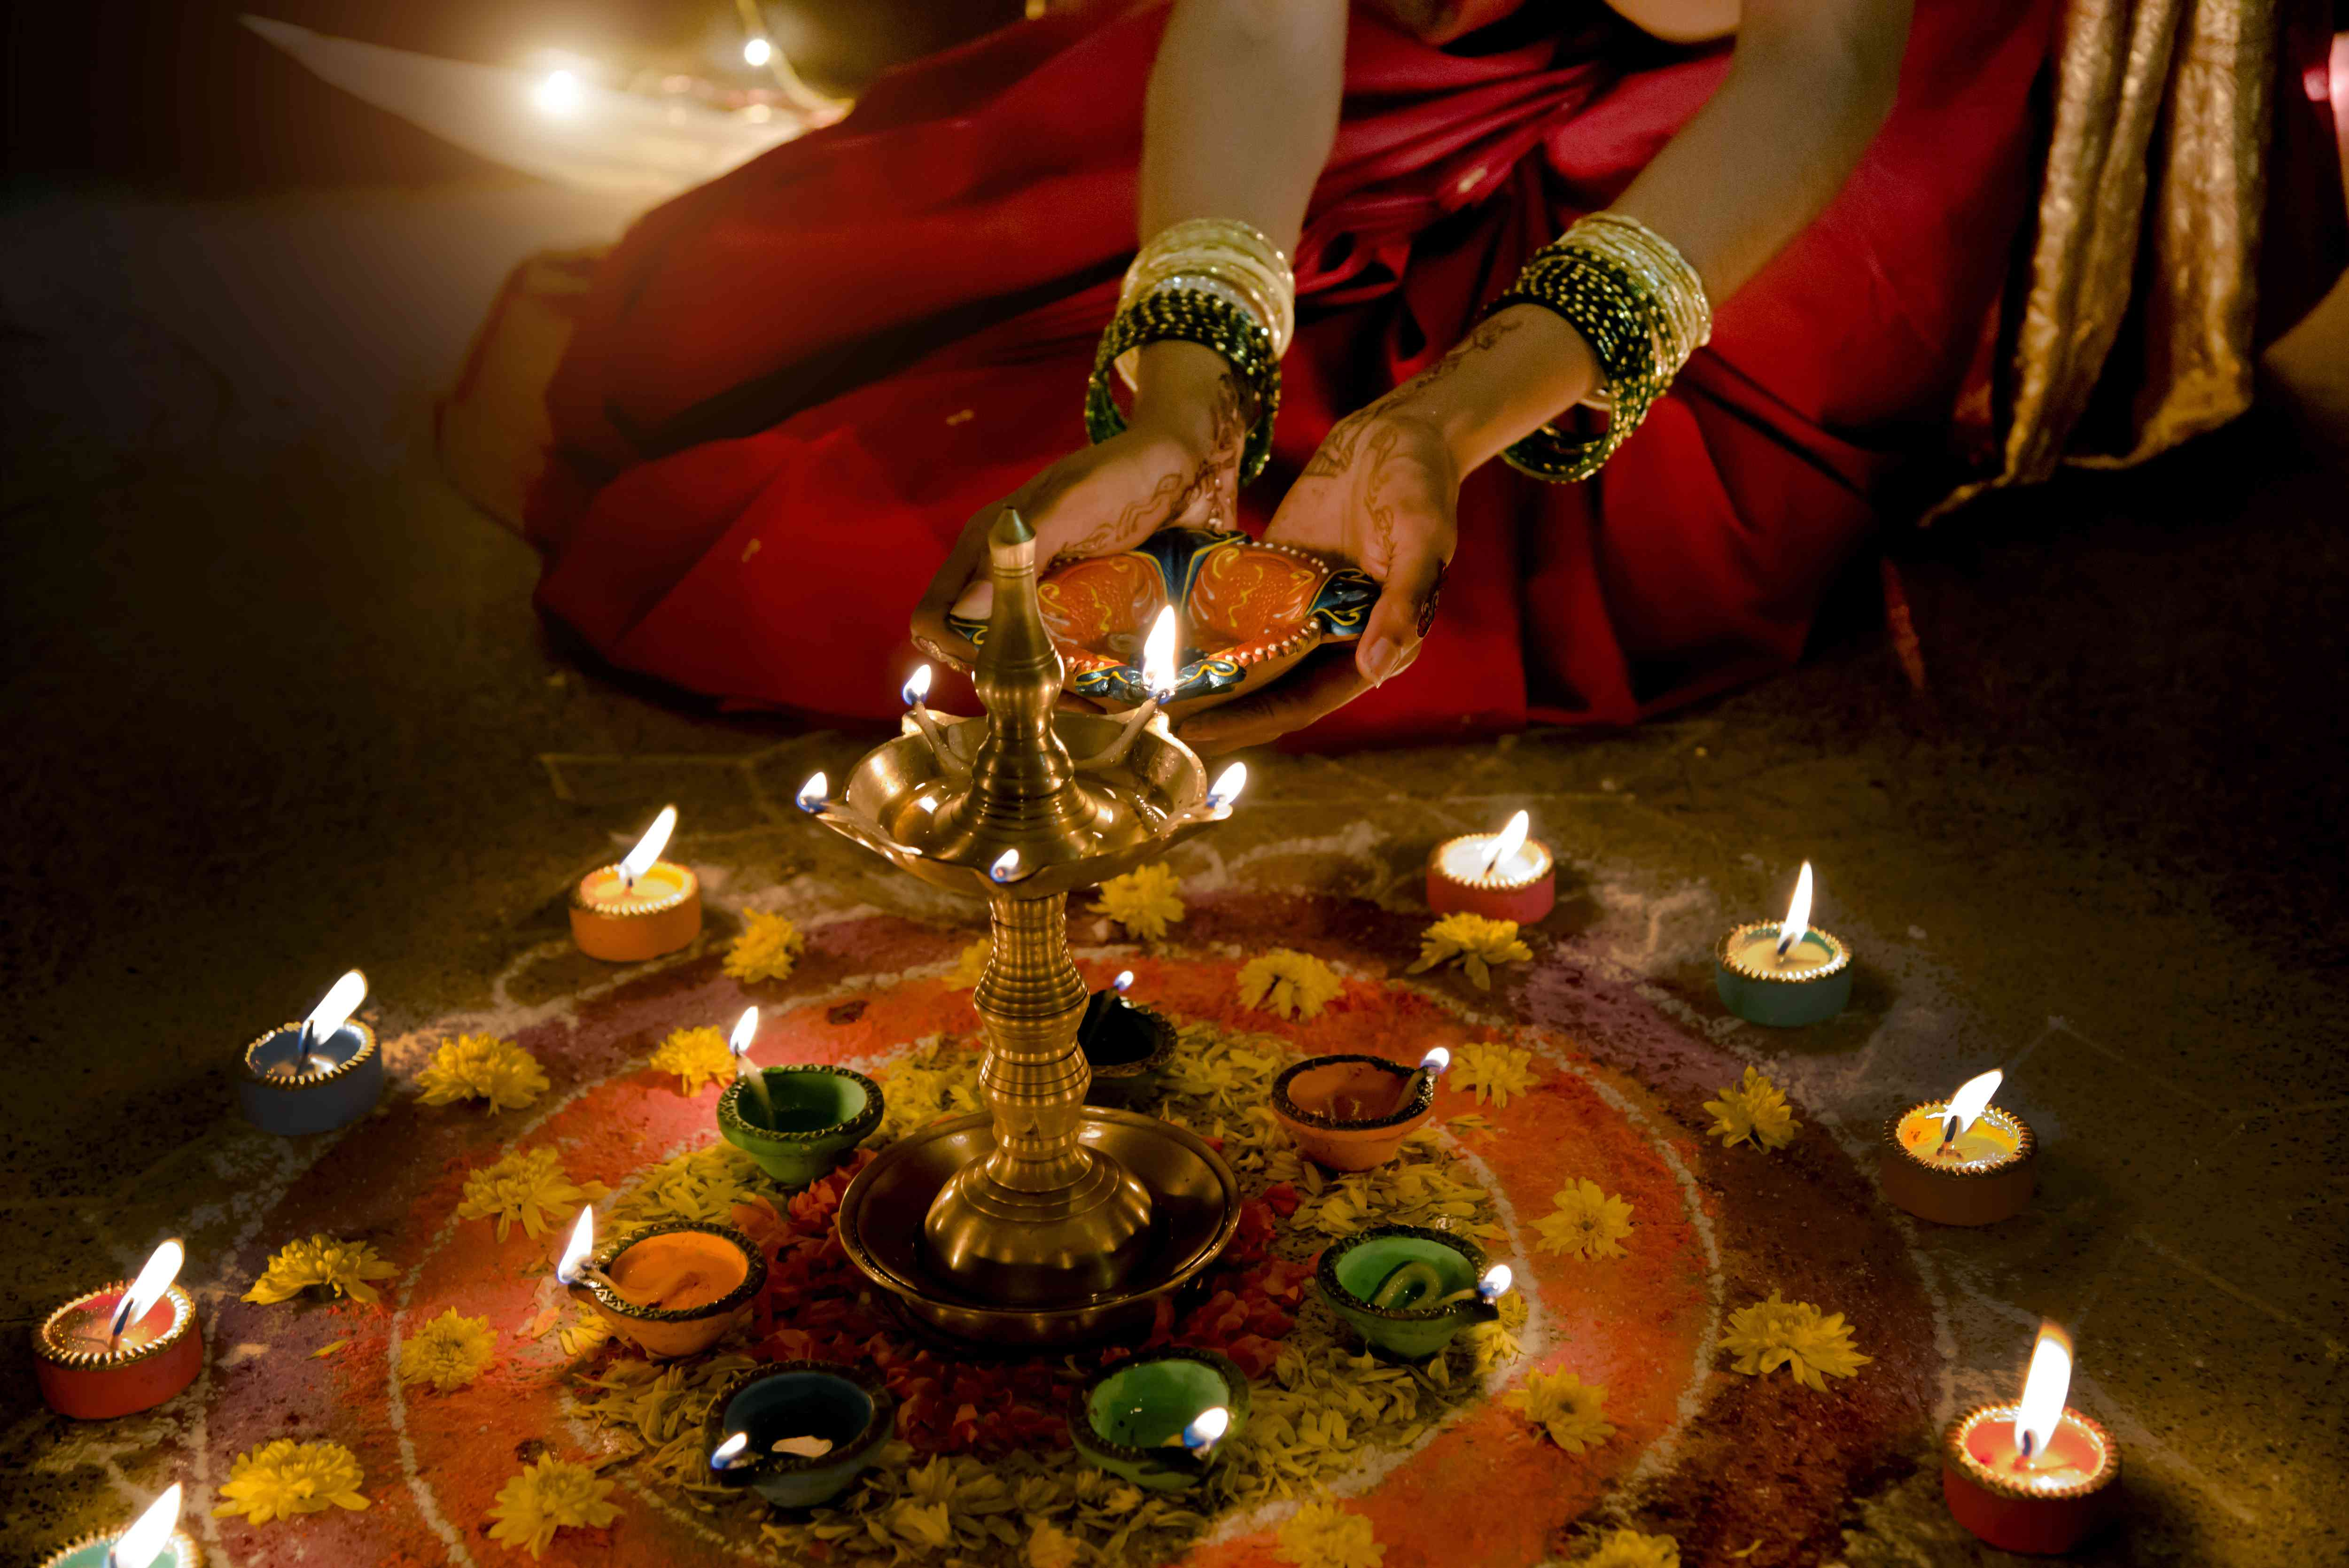 Woman's hands holding a ghee lantern for Diwali in India